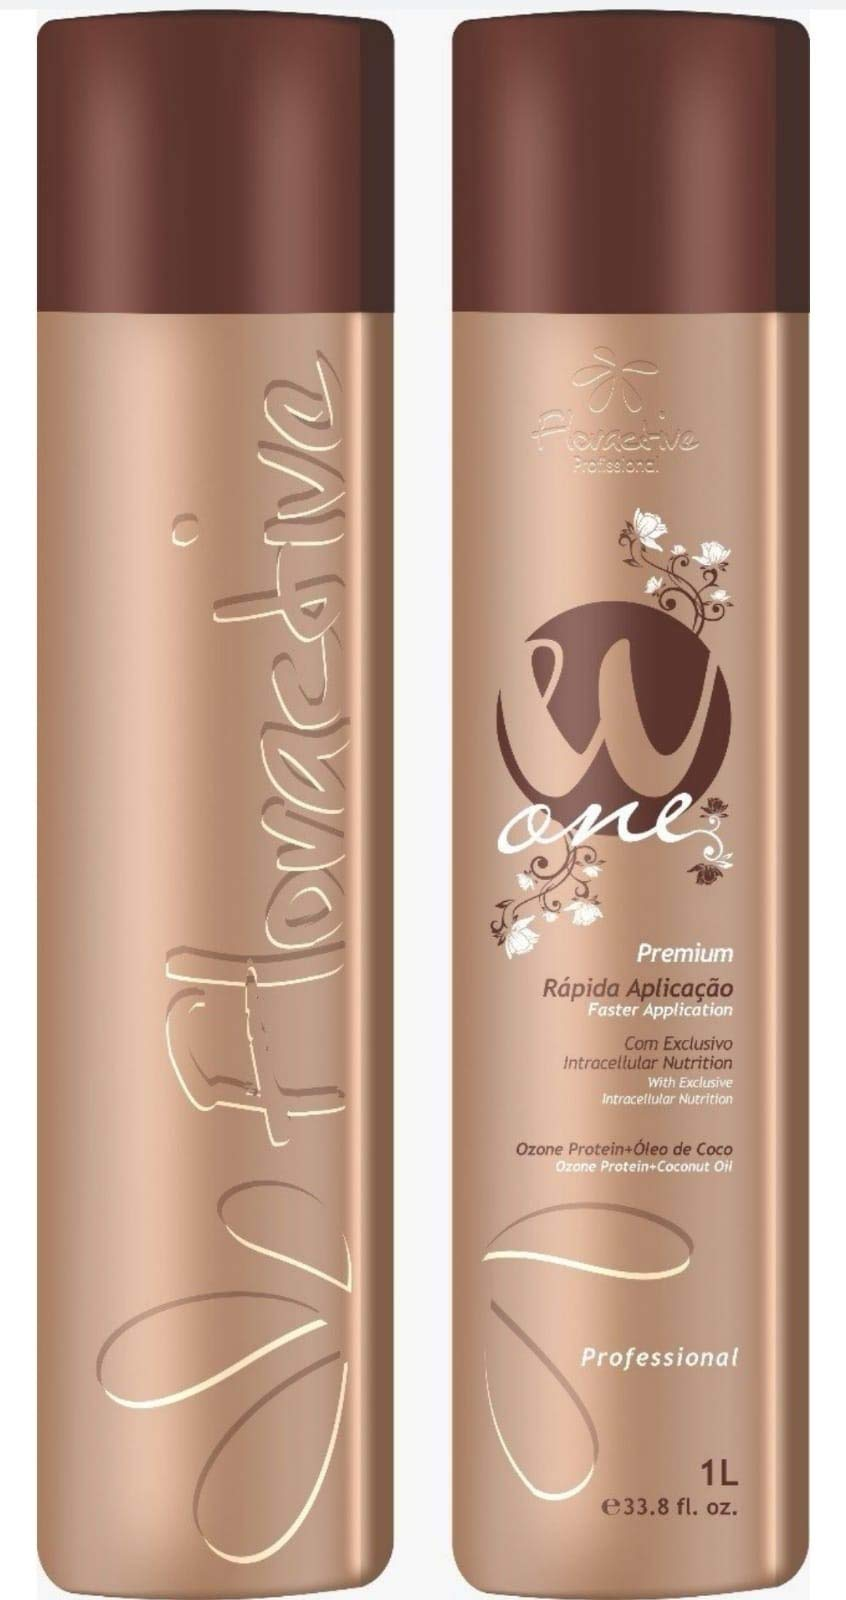 W One Professional Hair Treatment.Ozone Protein + Coconut Oil 1L Fast Acting